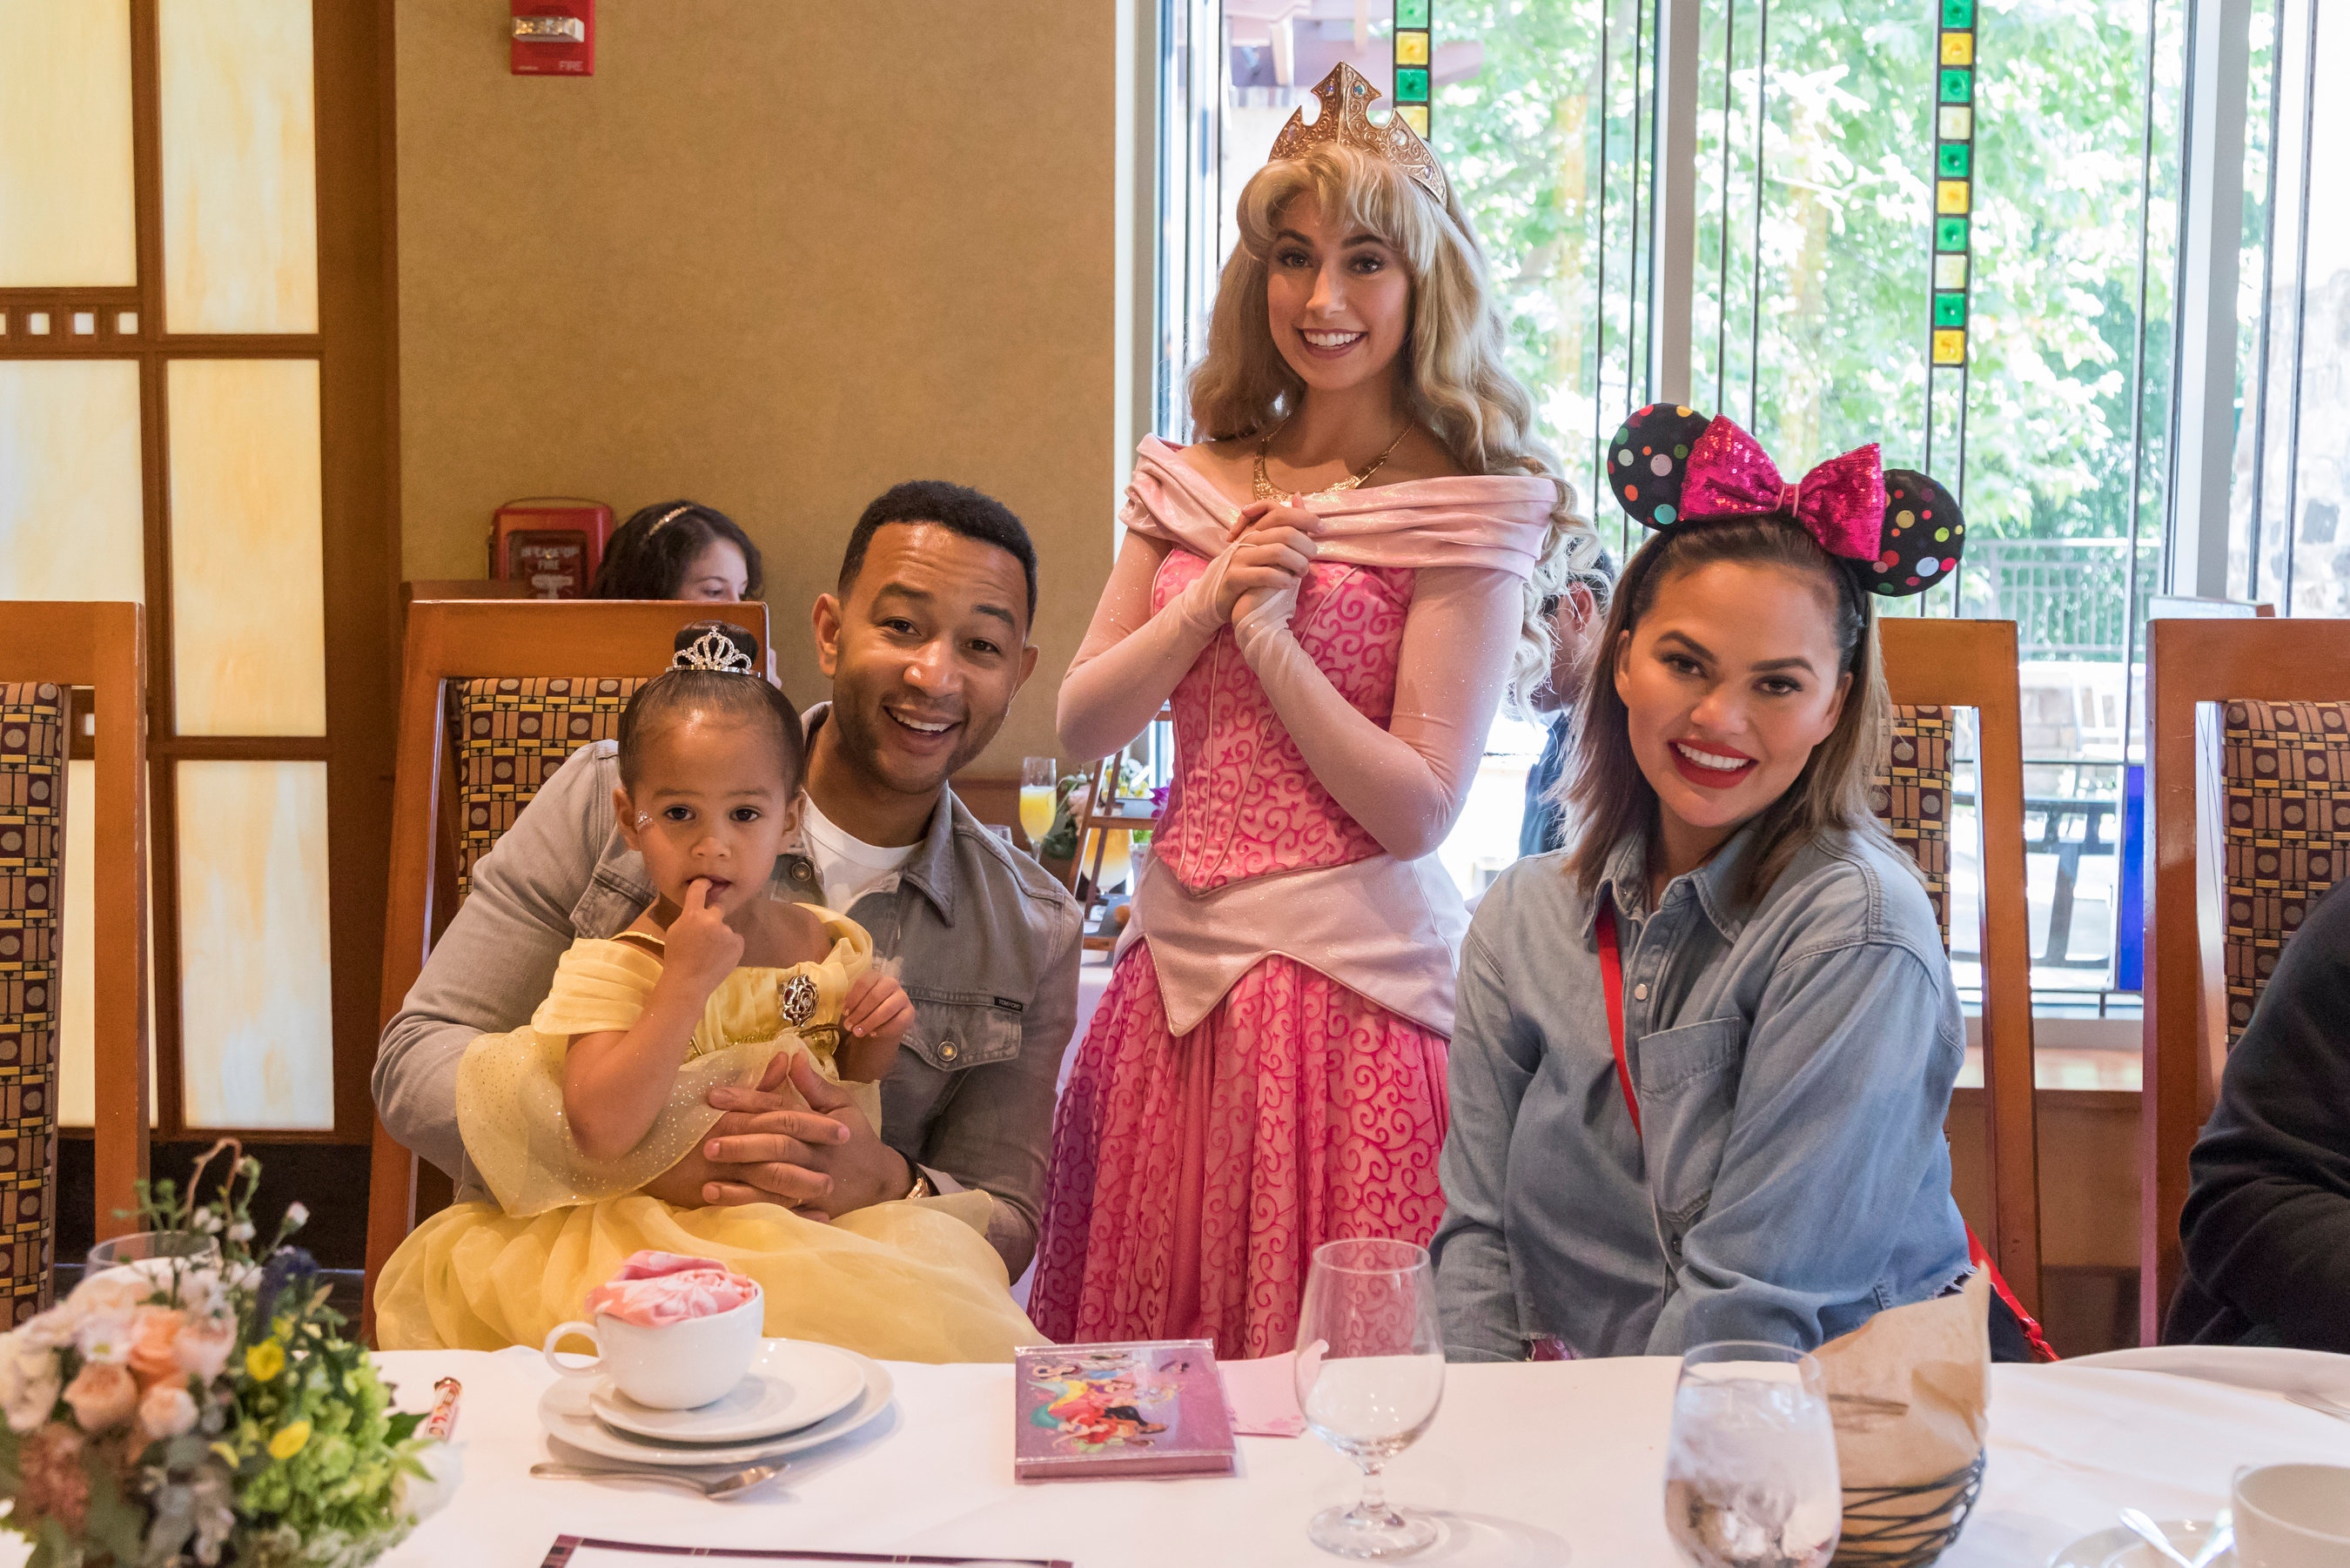 John Legend, Chrissy Teigen and daughter Luna Stephens pose with Princess Aurora at Disneyland in Anaheim, California, on April 12, 2019, during a trip to celebrate Luna's third birthday.